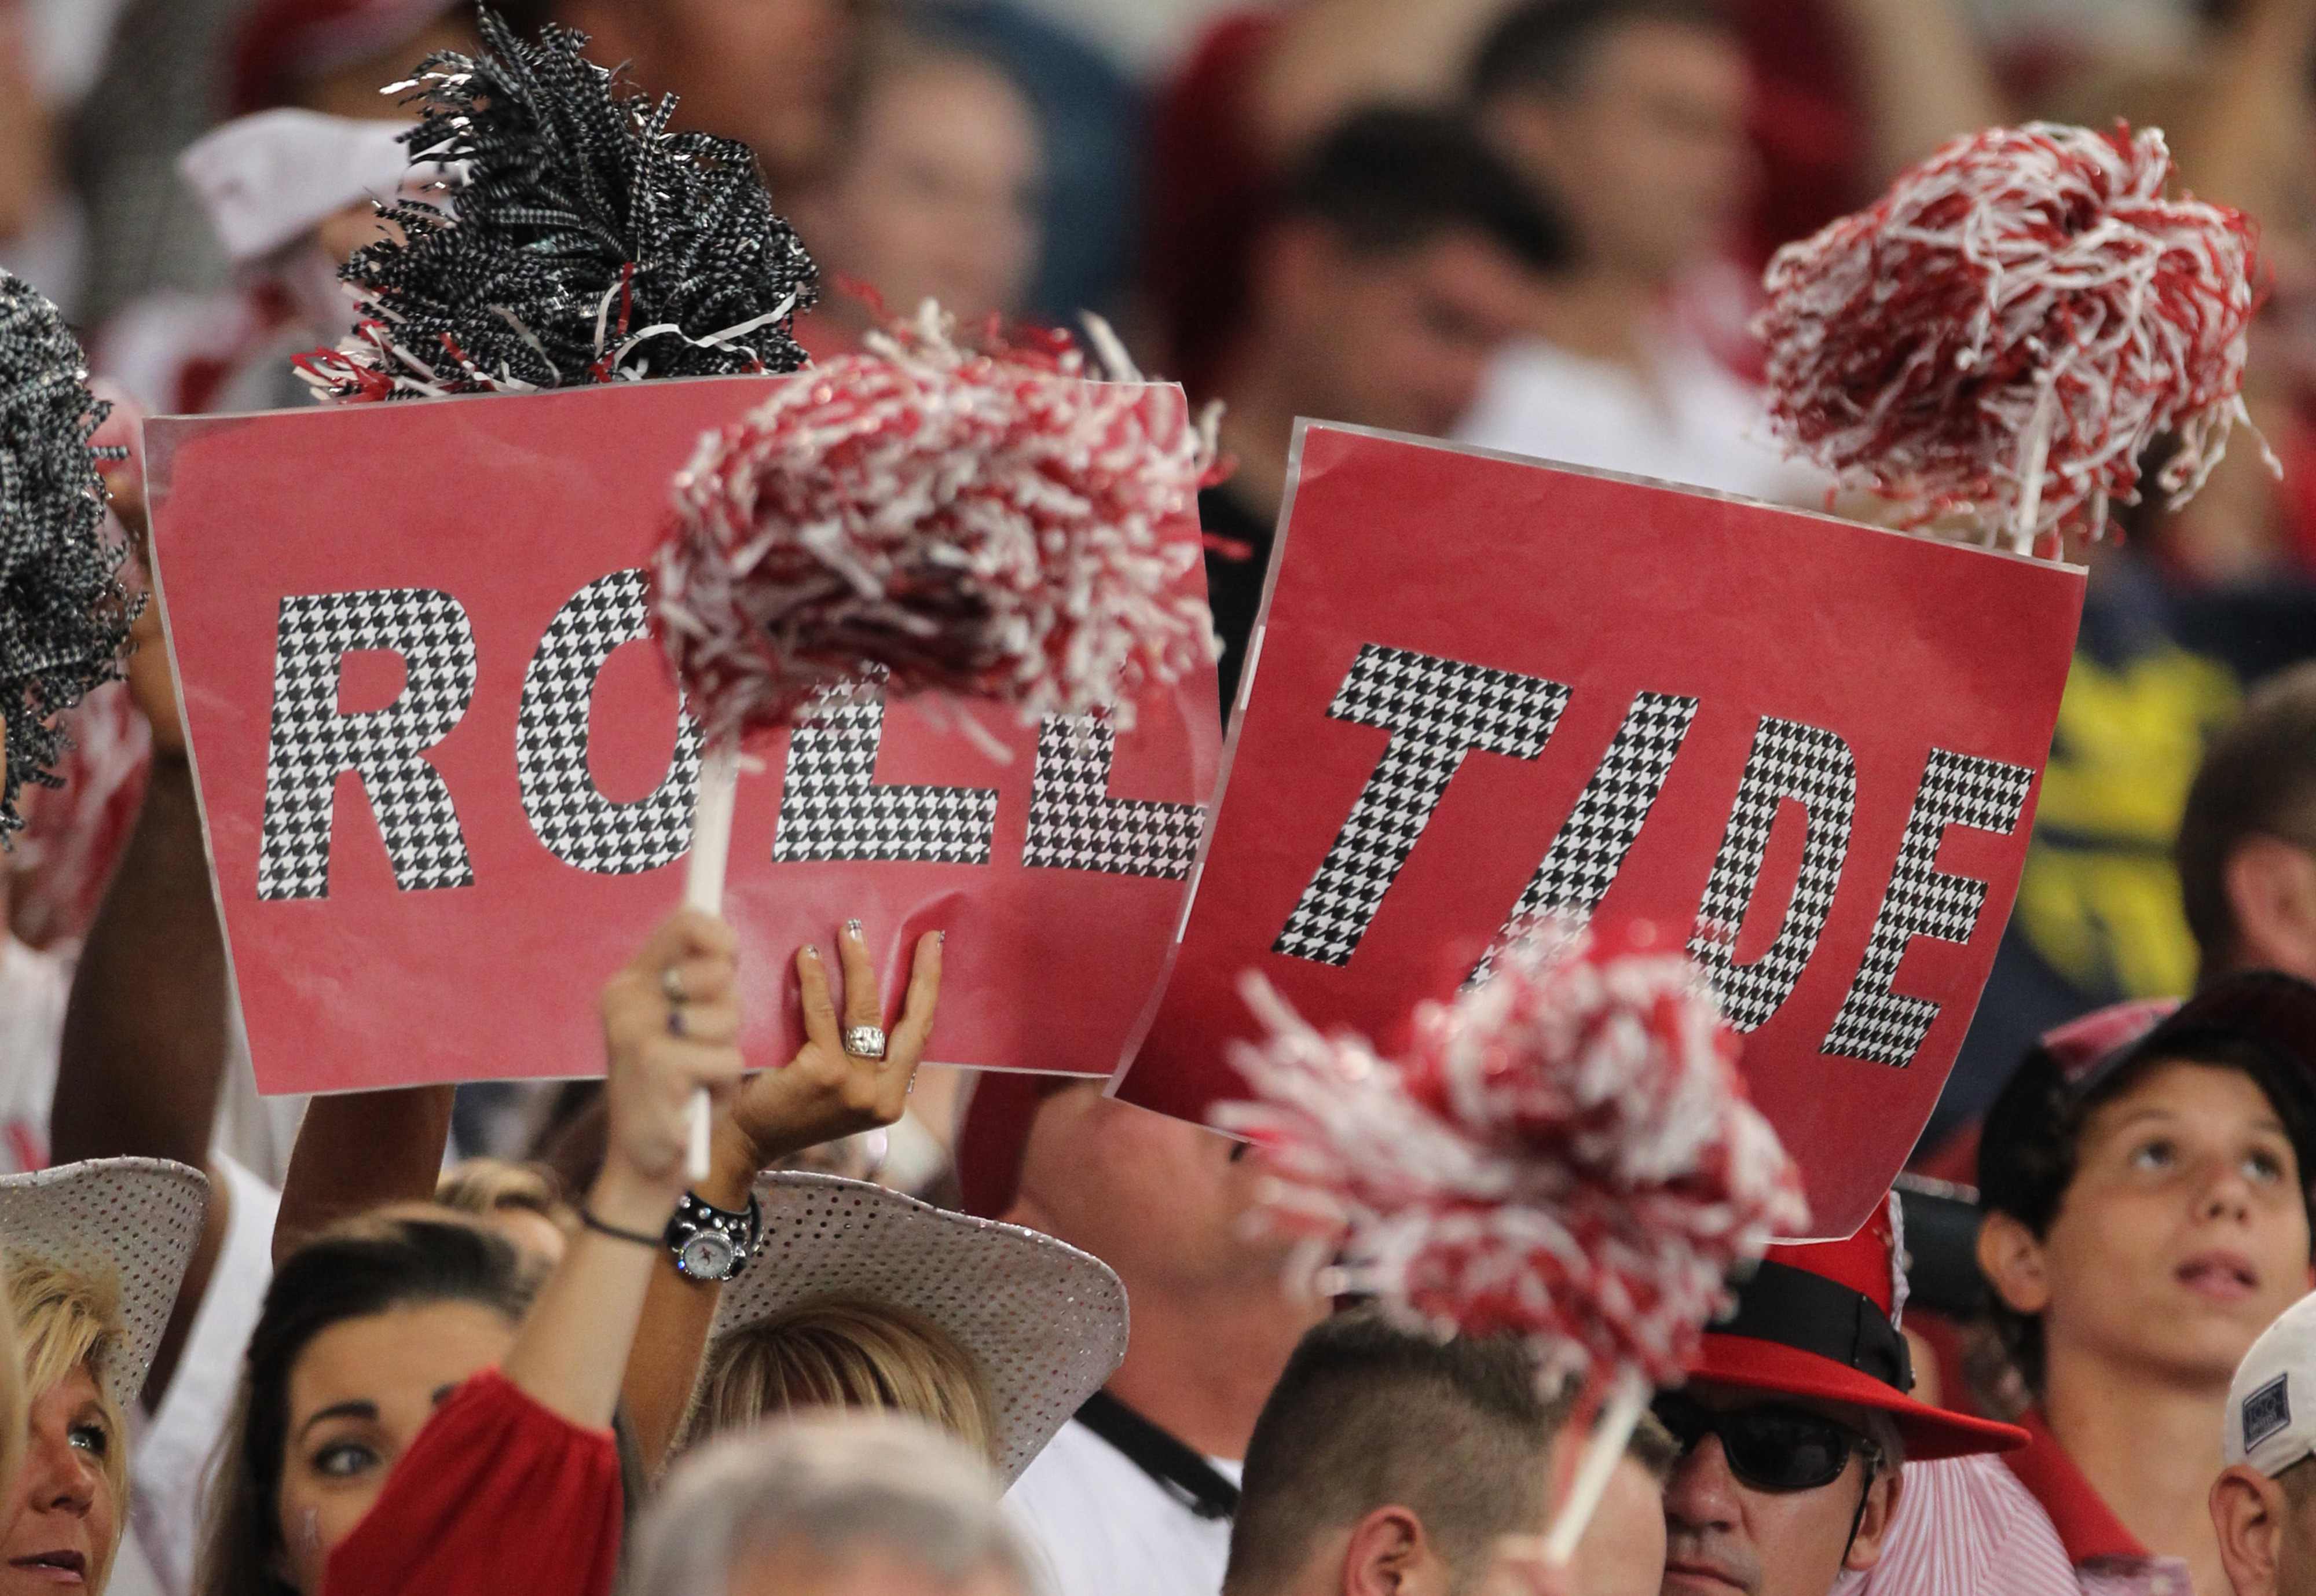 Sep 1, 2012; Arlington, TX, USA; Alabama Crimson Tide fans hold a sign  for roll tide during the game against the Michigan Wolverines at Cowboys Stadium. Mandatory Credit: Matthew Emmons-US PRESSWIRE